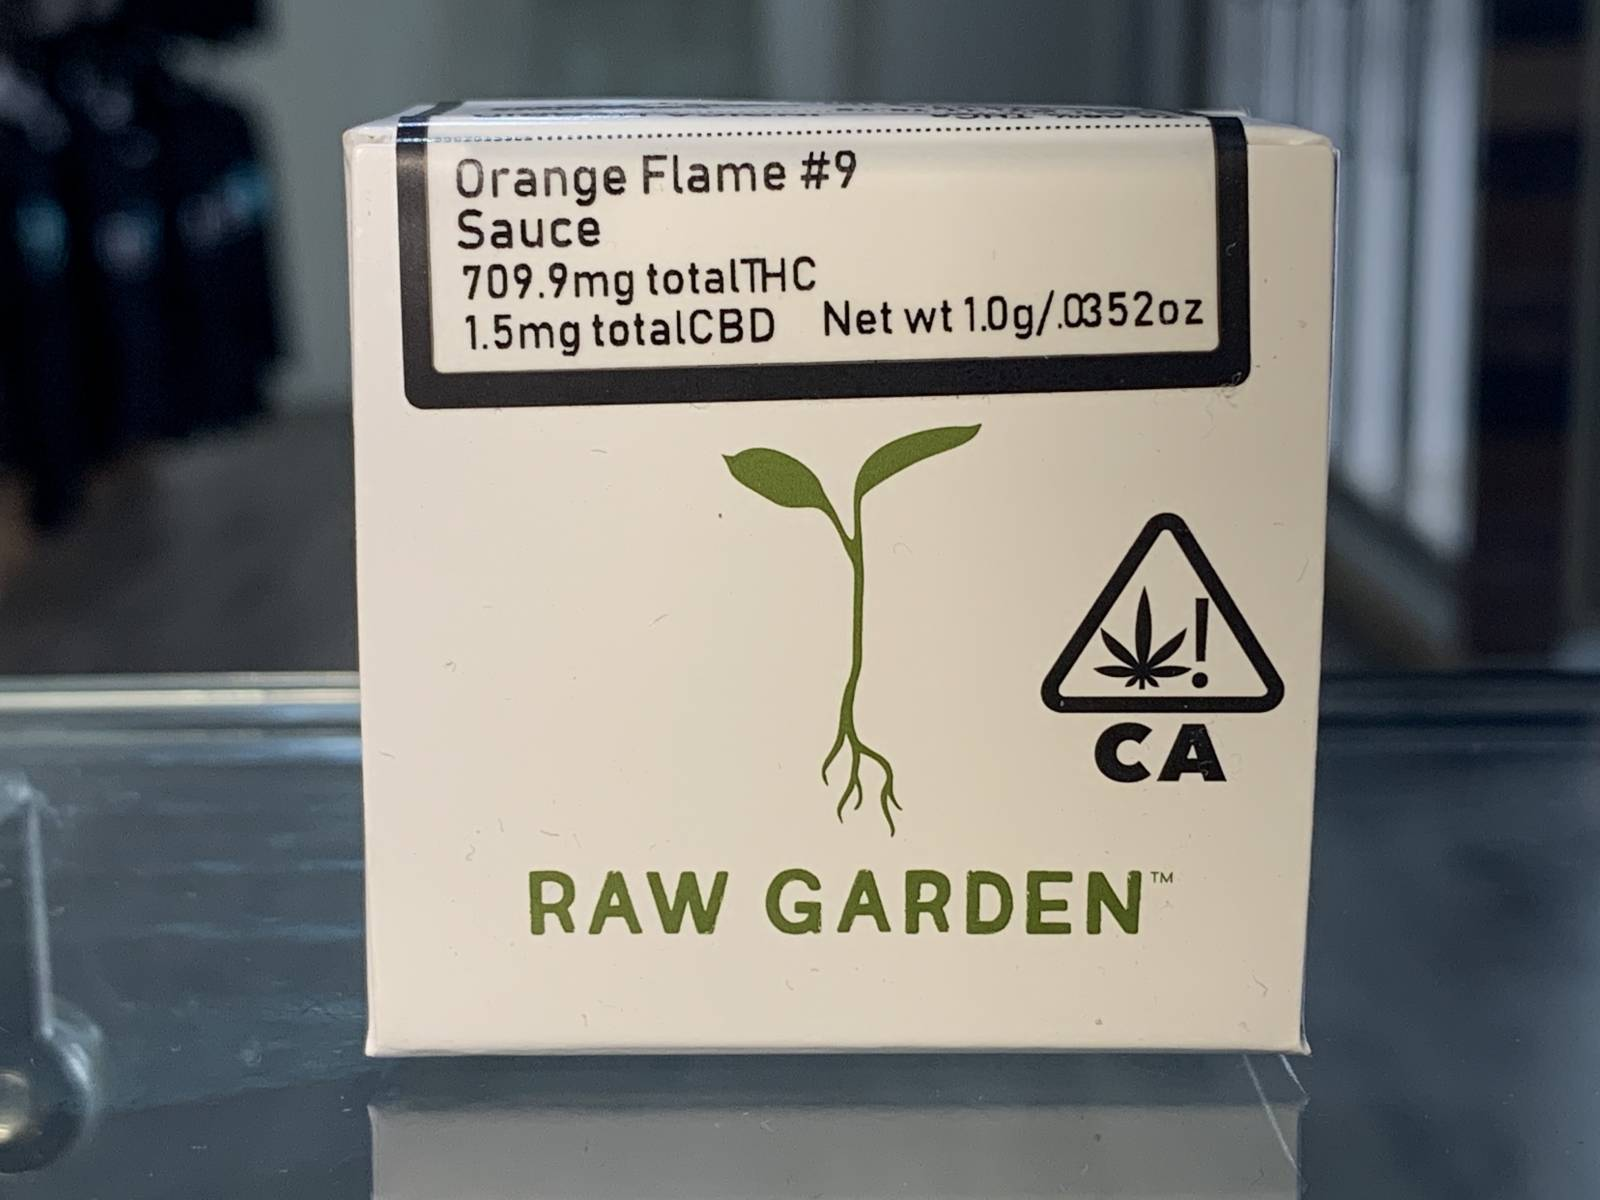 Raw Garden Orange Flame #9 1 gram sauce